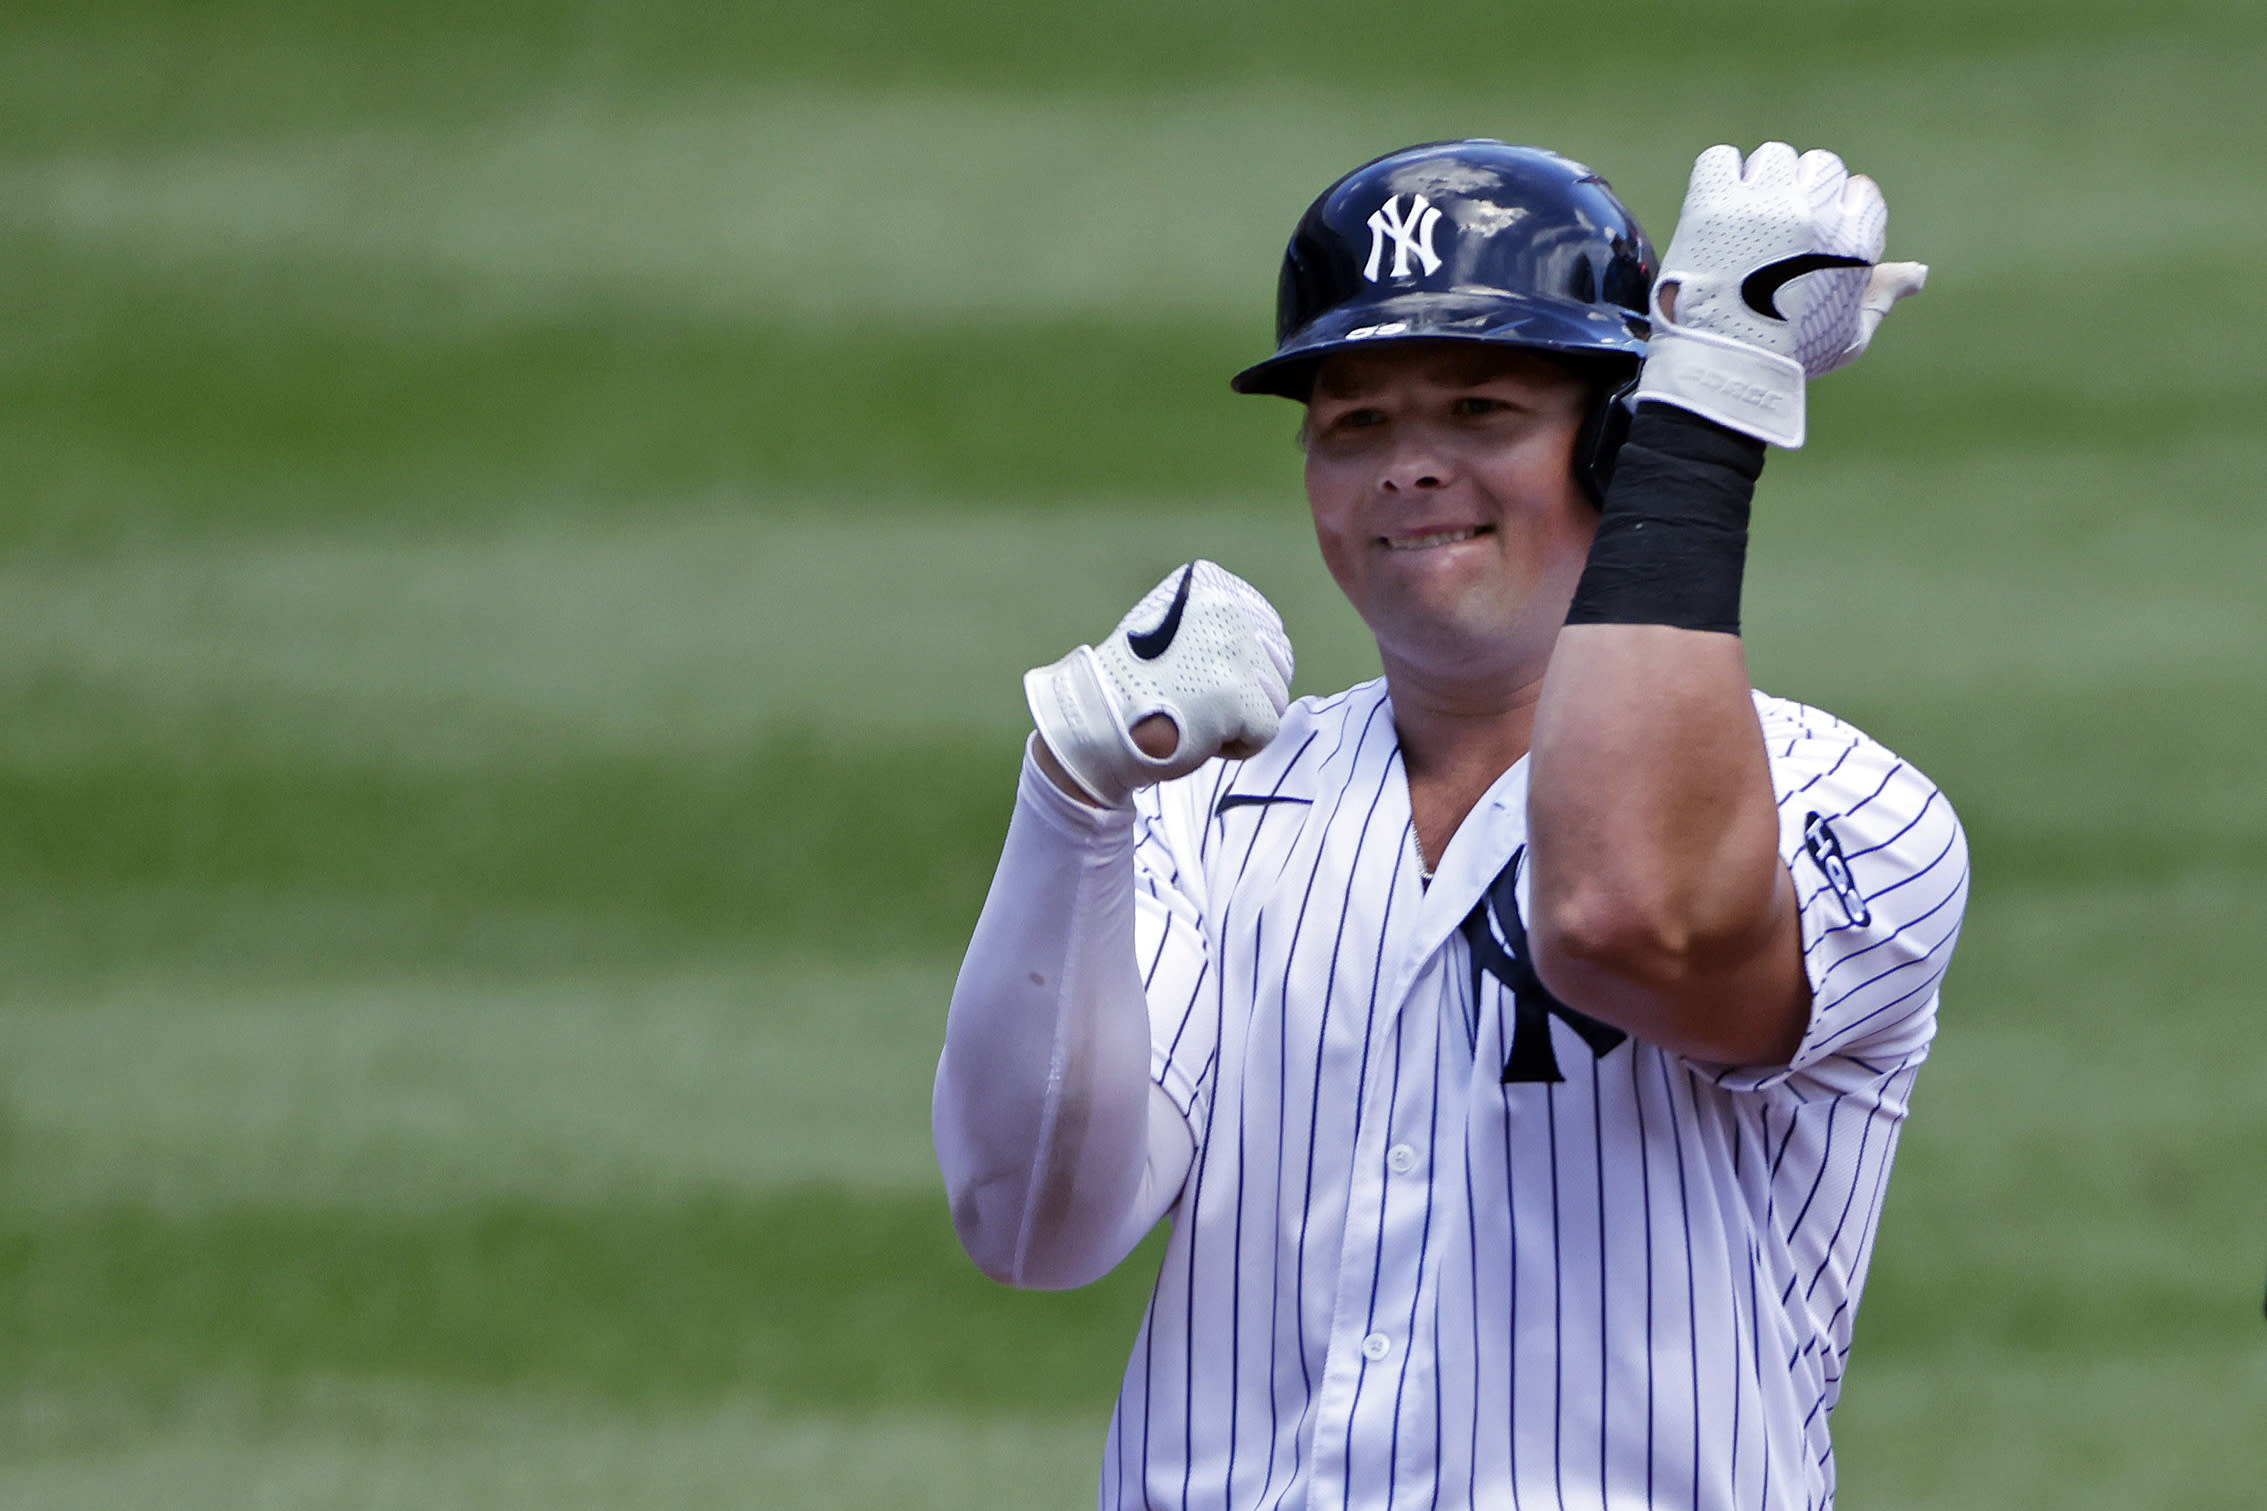 New York Yankees' Luke Voit reacts after hitting a double against the New York Mets during the first inning of the first baseball game of a doubleheader, Sunday, Aug. 30, 2020, in New York. (AP Photo/Adam Hunger)